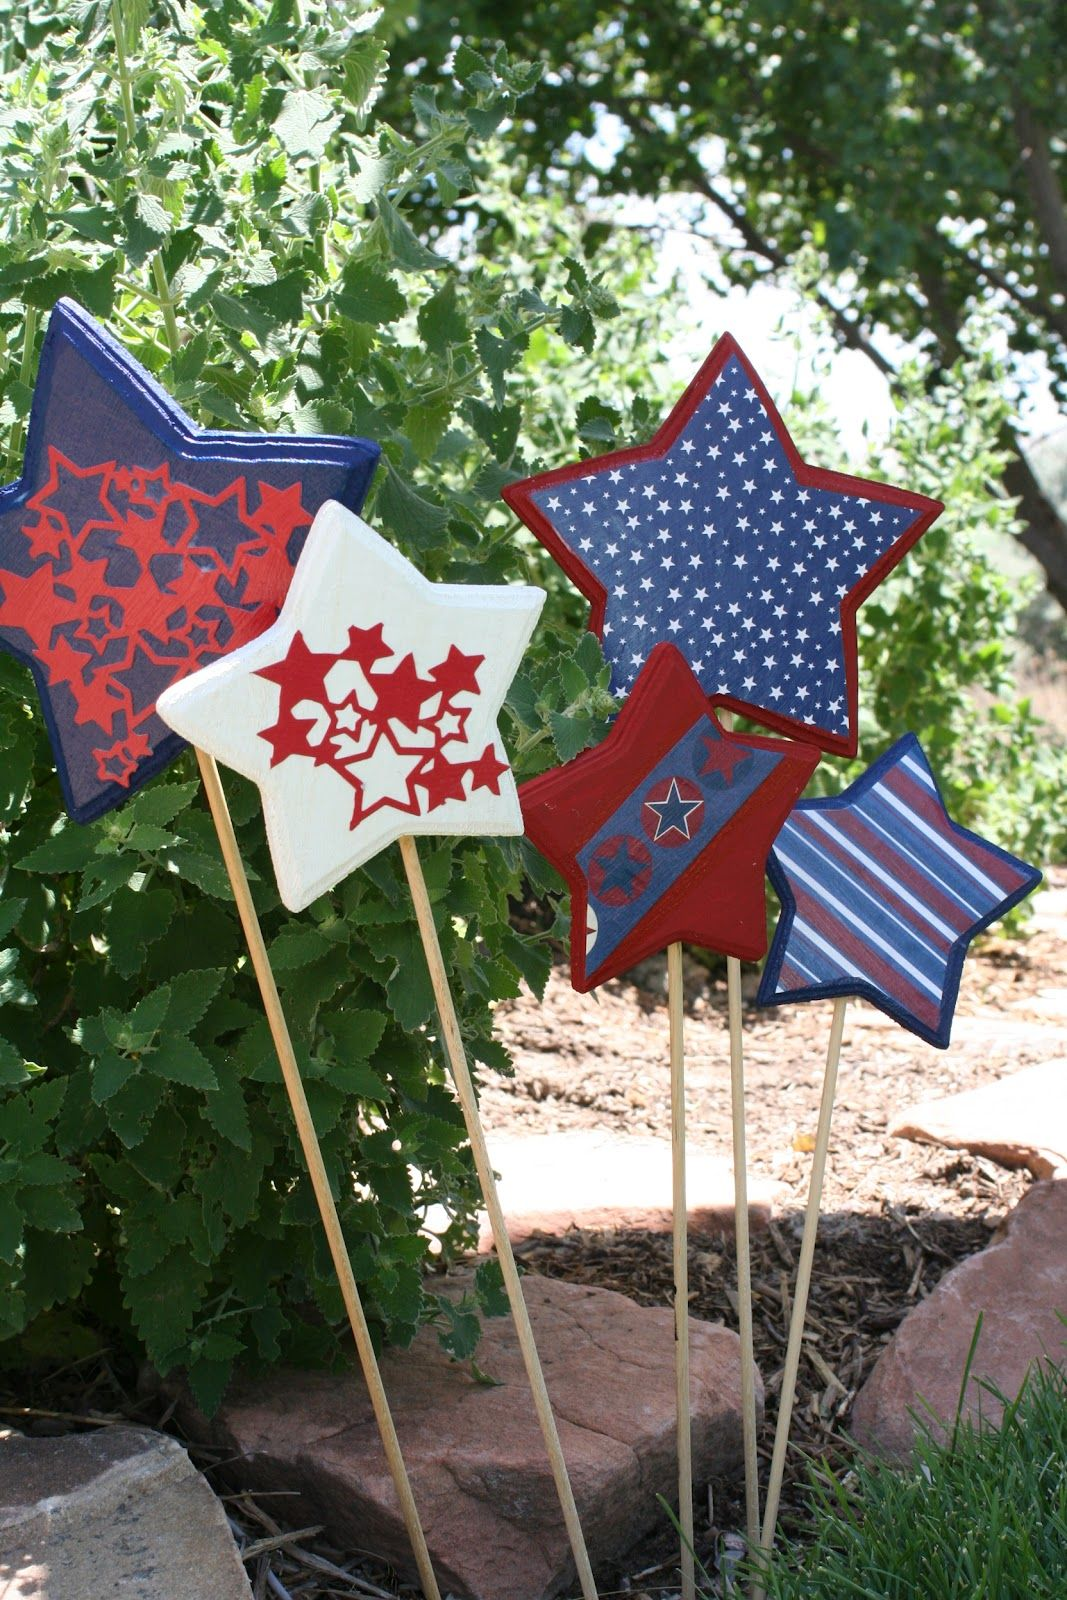 Lisa Fourth Of July Celebrations 4th Of July Decorations July 4th Holiday Yard Decor